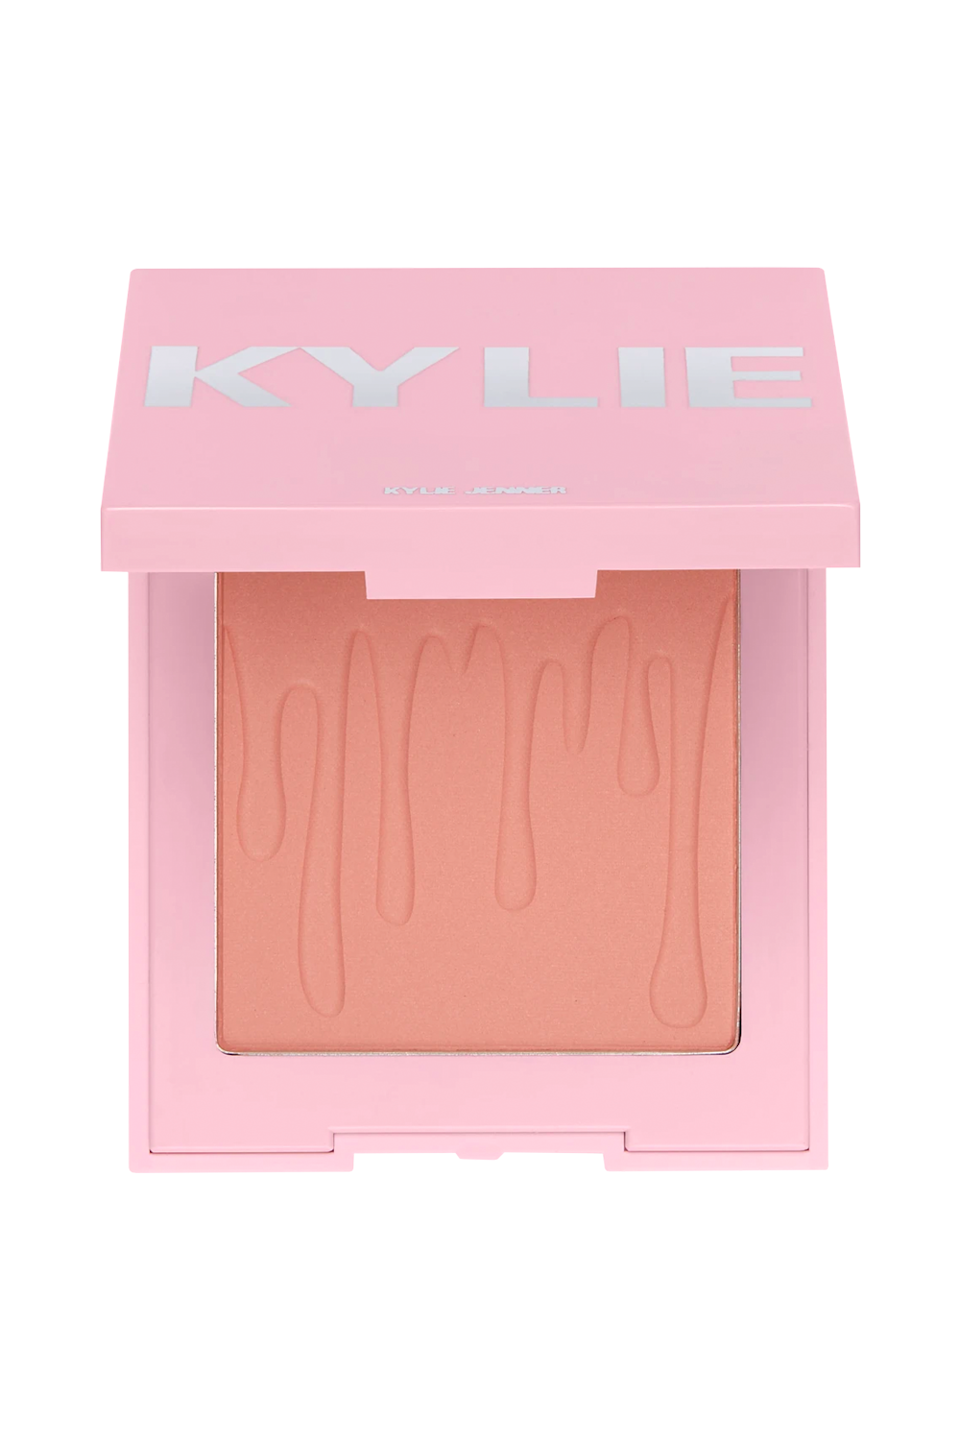 "<p><strong>KYLIE COSMETICS</strong></p><p>ulta.com</p><p><a href=""https://go.redirectingat.com?id=74968X1596630&url=https%3A%2F%2Fwww.ulta.com%2Fblush%3FproductId%3Dpimprod2007190&sref=https%3A%2F%2Fwww.redbookmag.com%2Fbeauty%2Fg34807817%2Fulta-black-friday-cyber-monday-deals-2020%2F"" rel=""nofollow noopener"" target=""_blank"" data-ylk=""slk:Shop Now"" class=""link rapid-noclick-resp"">Shop Now</a></p><p><strong><del>$18</del> $10</strong></p><p>One of the best deals in this year's sale? All <strong>Kylie Cosmetics blush, <a href=""https://www.cosmopolitan.com/style-beauty/beauty/advice/g1416/how-to-use-bronzer/"" rel=""nofollow noopener"" target=""_blank"" data-ylk=""slk:bronzer"" class=""link rapid-noclick-resp"">bronzer</a>, and highlighter compacts are $10 each</strong> (that's roughly 40% off the normal price, BTW).</p>"